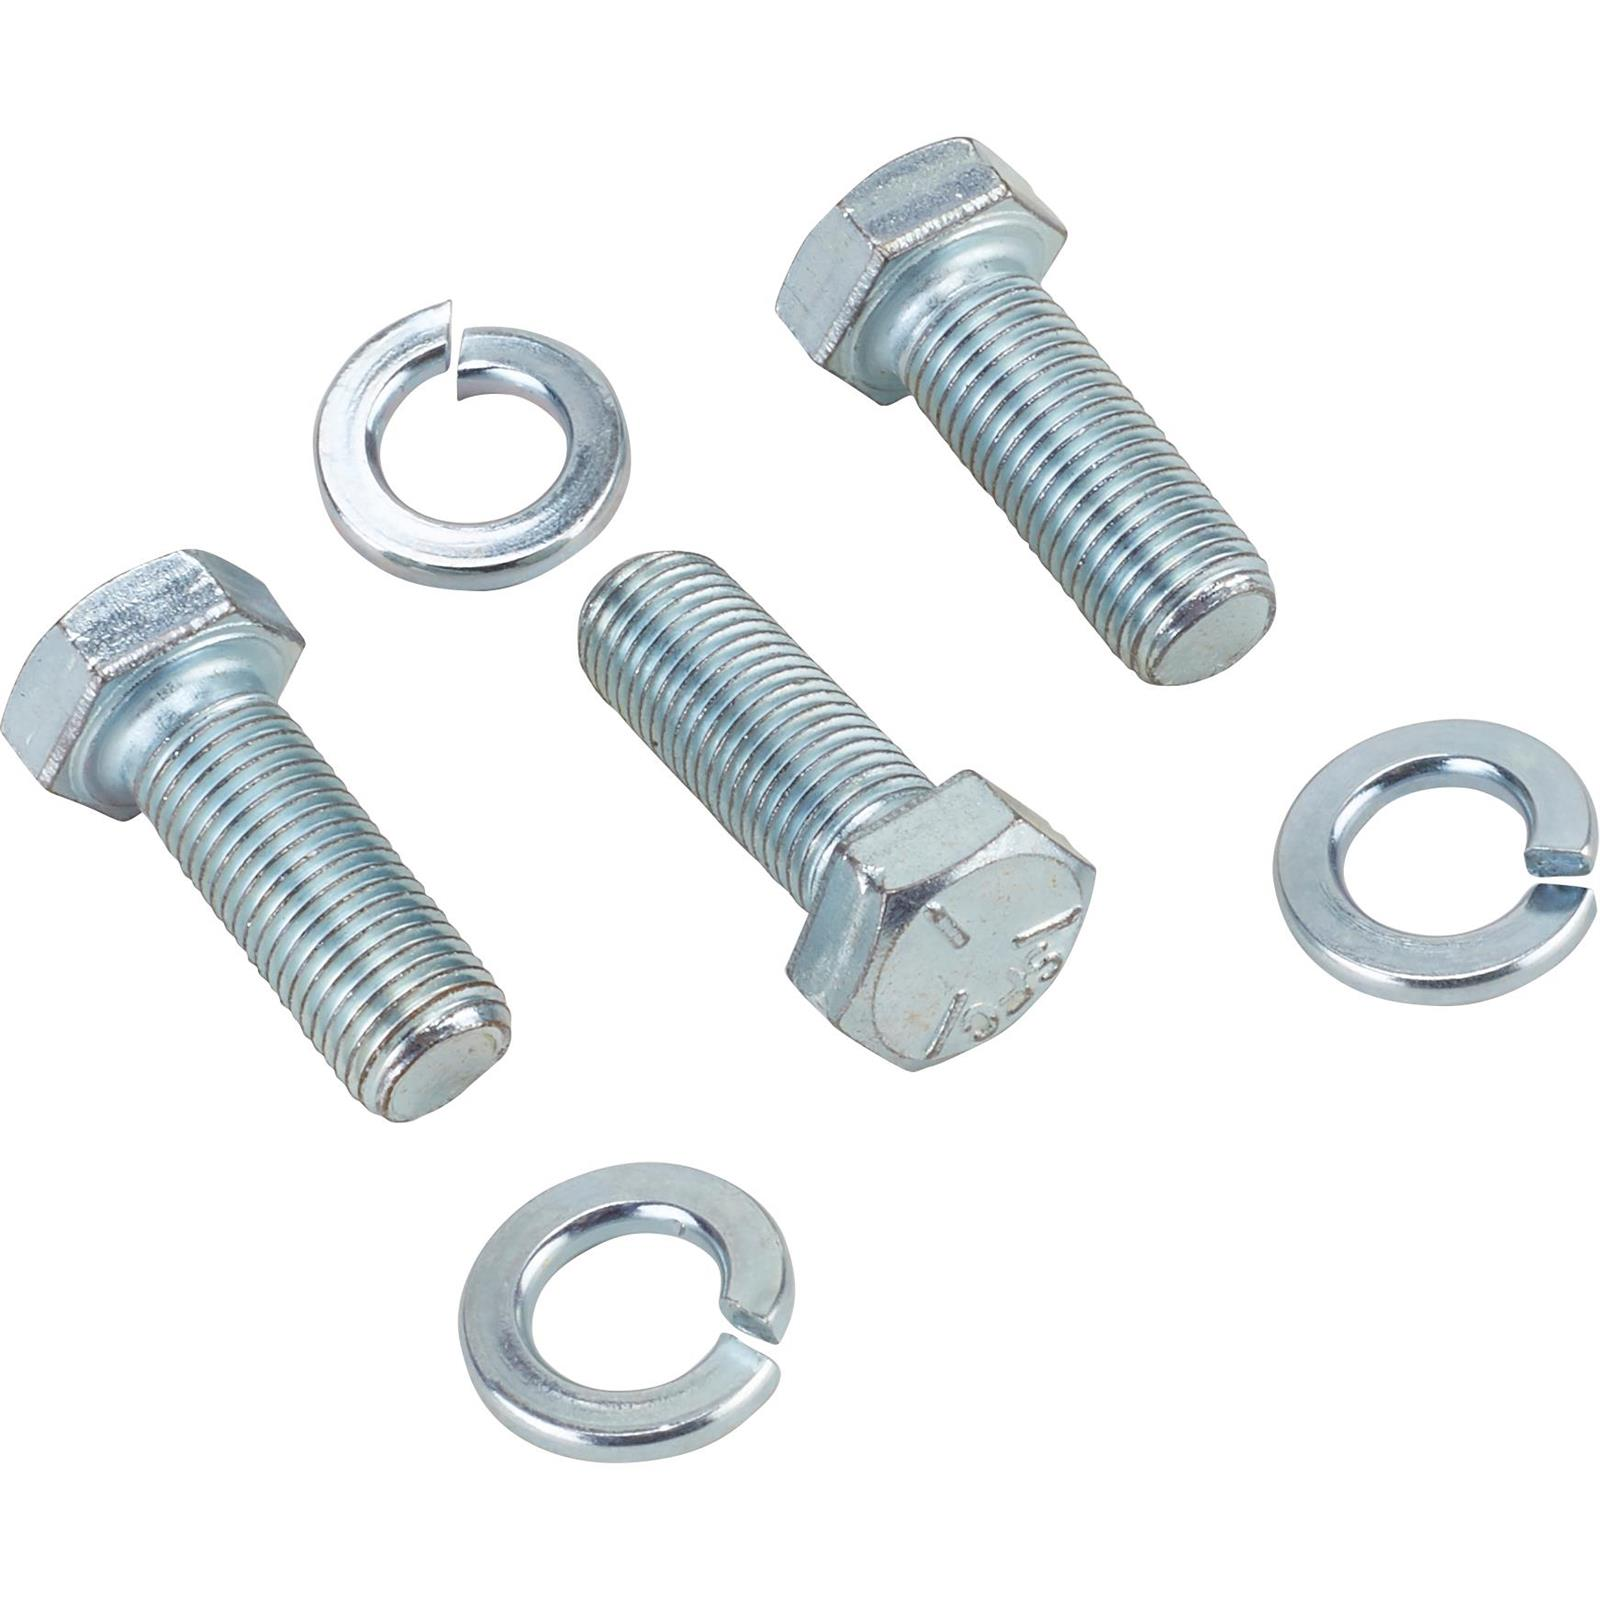 Crankshaft Pulley Bolt Kit